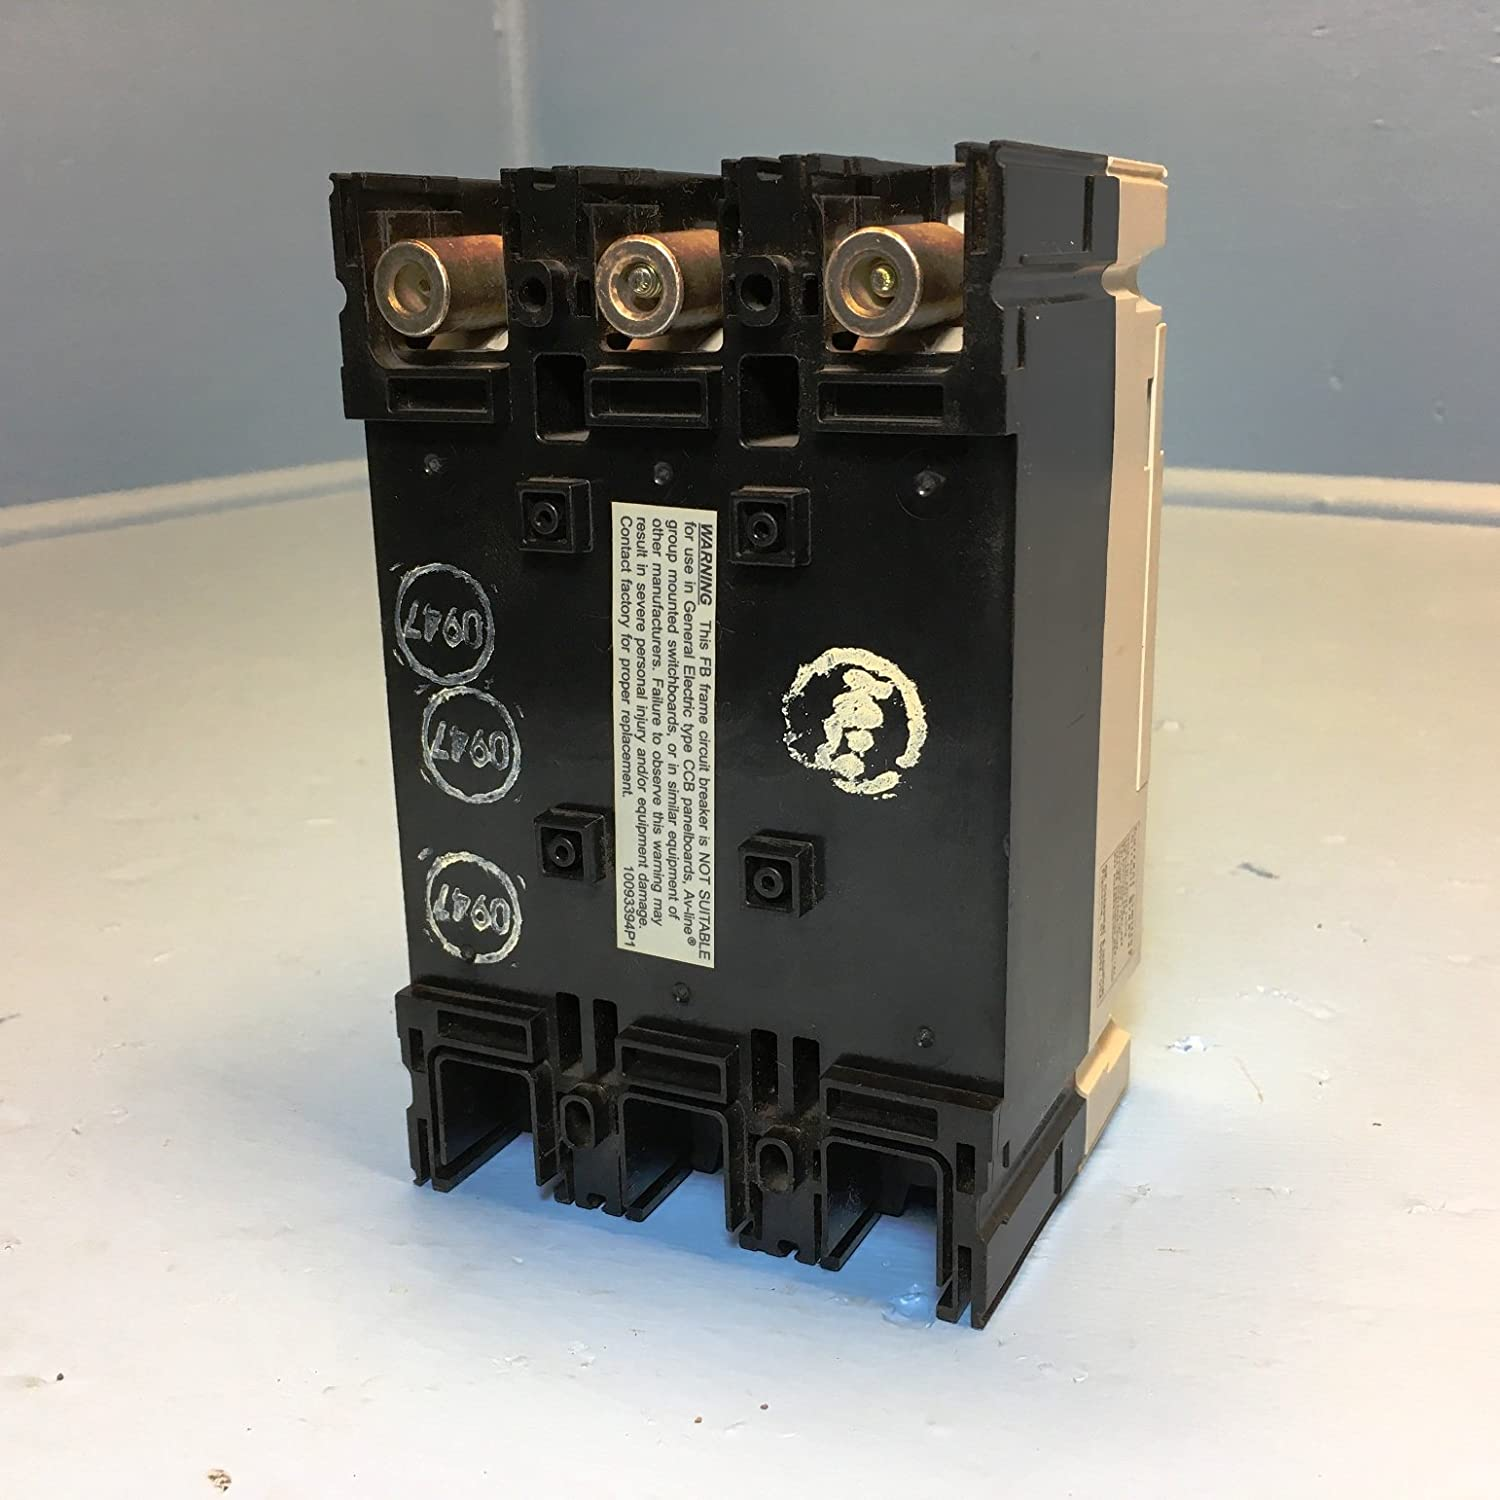 Ge Distribution Fbn36te015rv Record Plus Molded Case Circuit Breaker Basics Of Breakers For Electrical Engineers Additional Info 15 Amp 240 Volt Ac 480 600 347 3 Pole